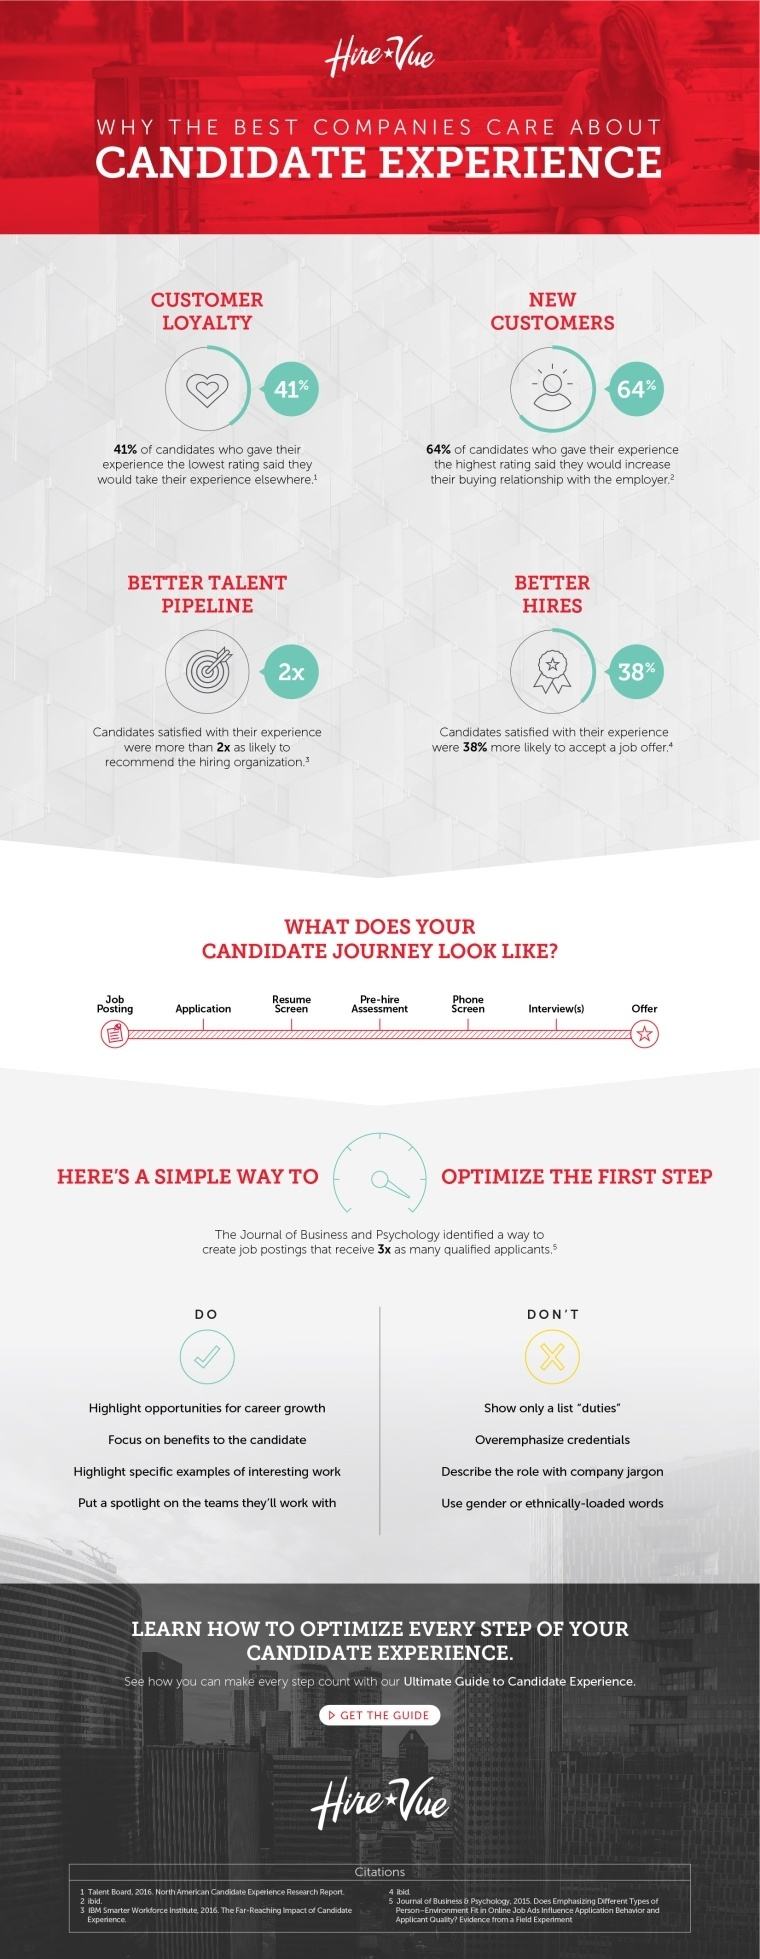 Optimized-Why The Best Companies Care About Candidate Experience - HireVuejpb.jpg